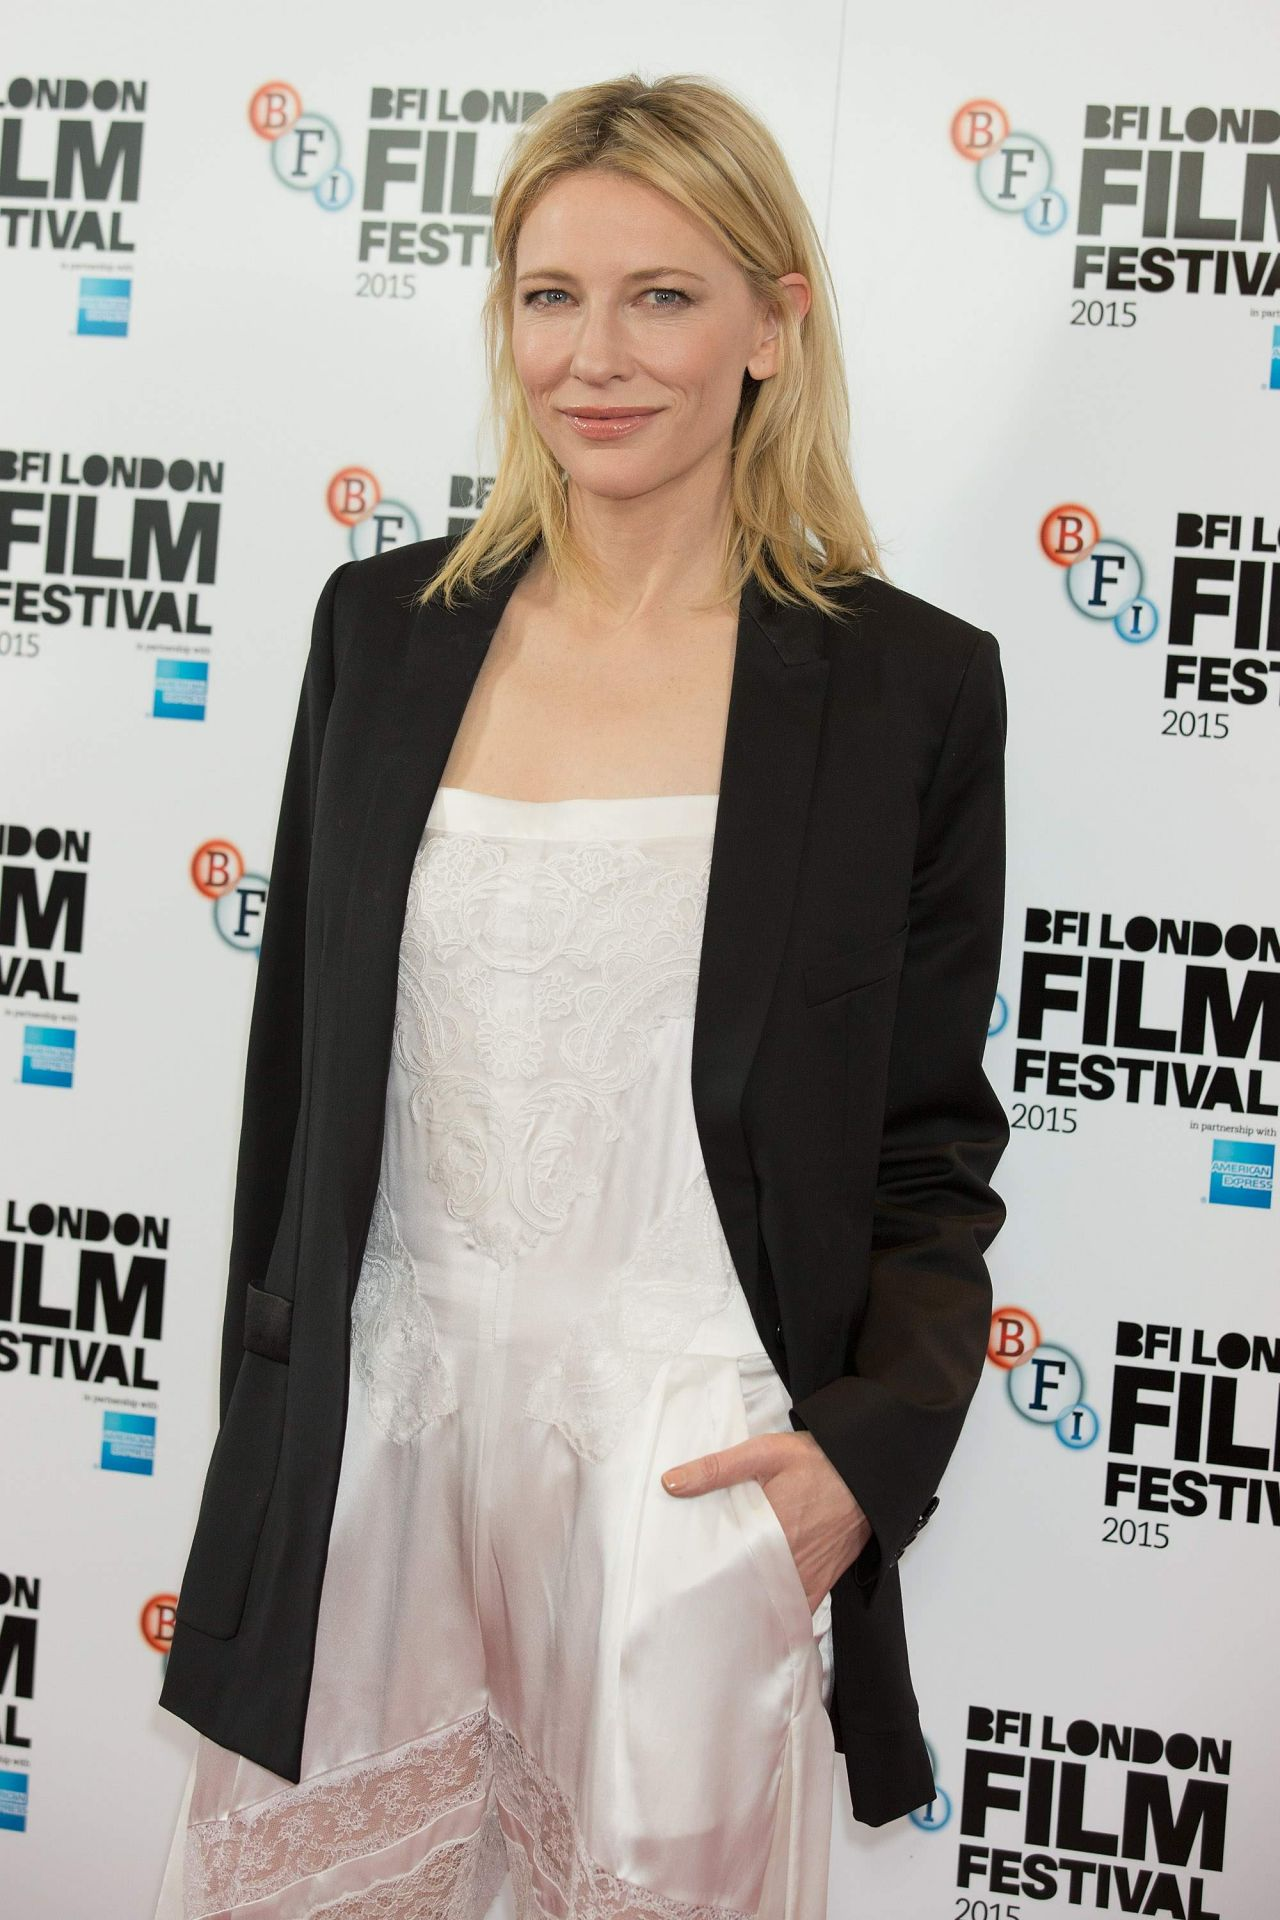 cate-blanchett-carol-photocall-bfi-london-film-festival_6